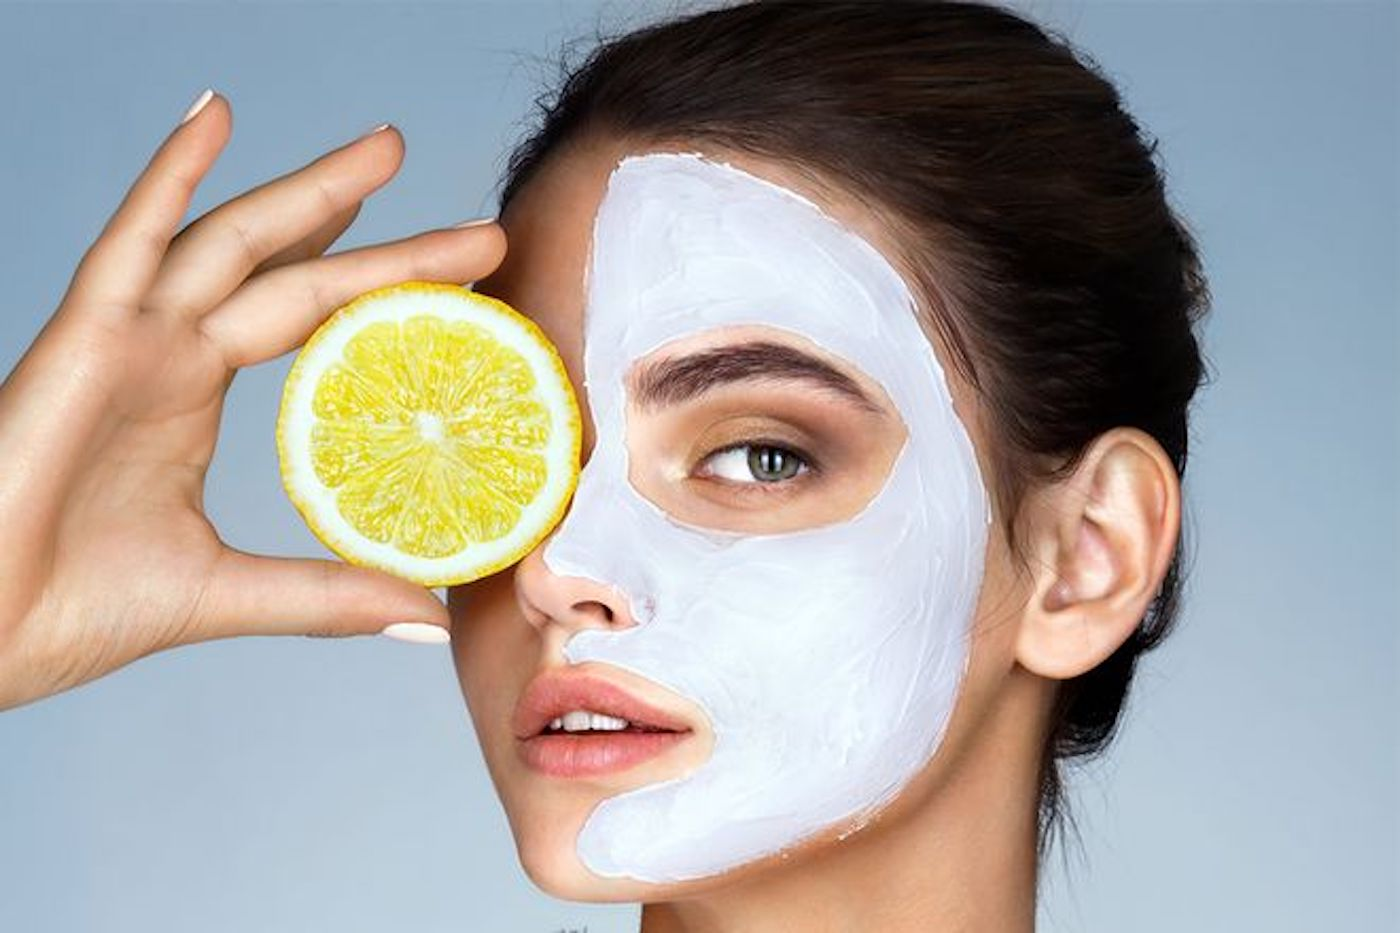 DIY Facial Peel Masks #skincare #beauty #DIY